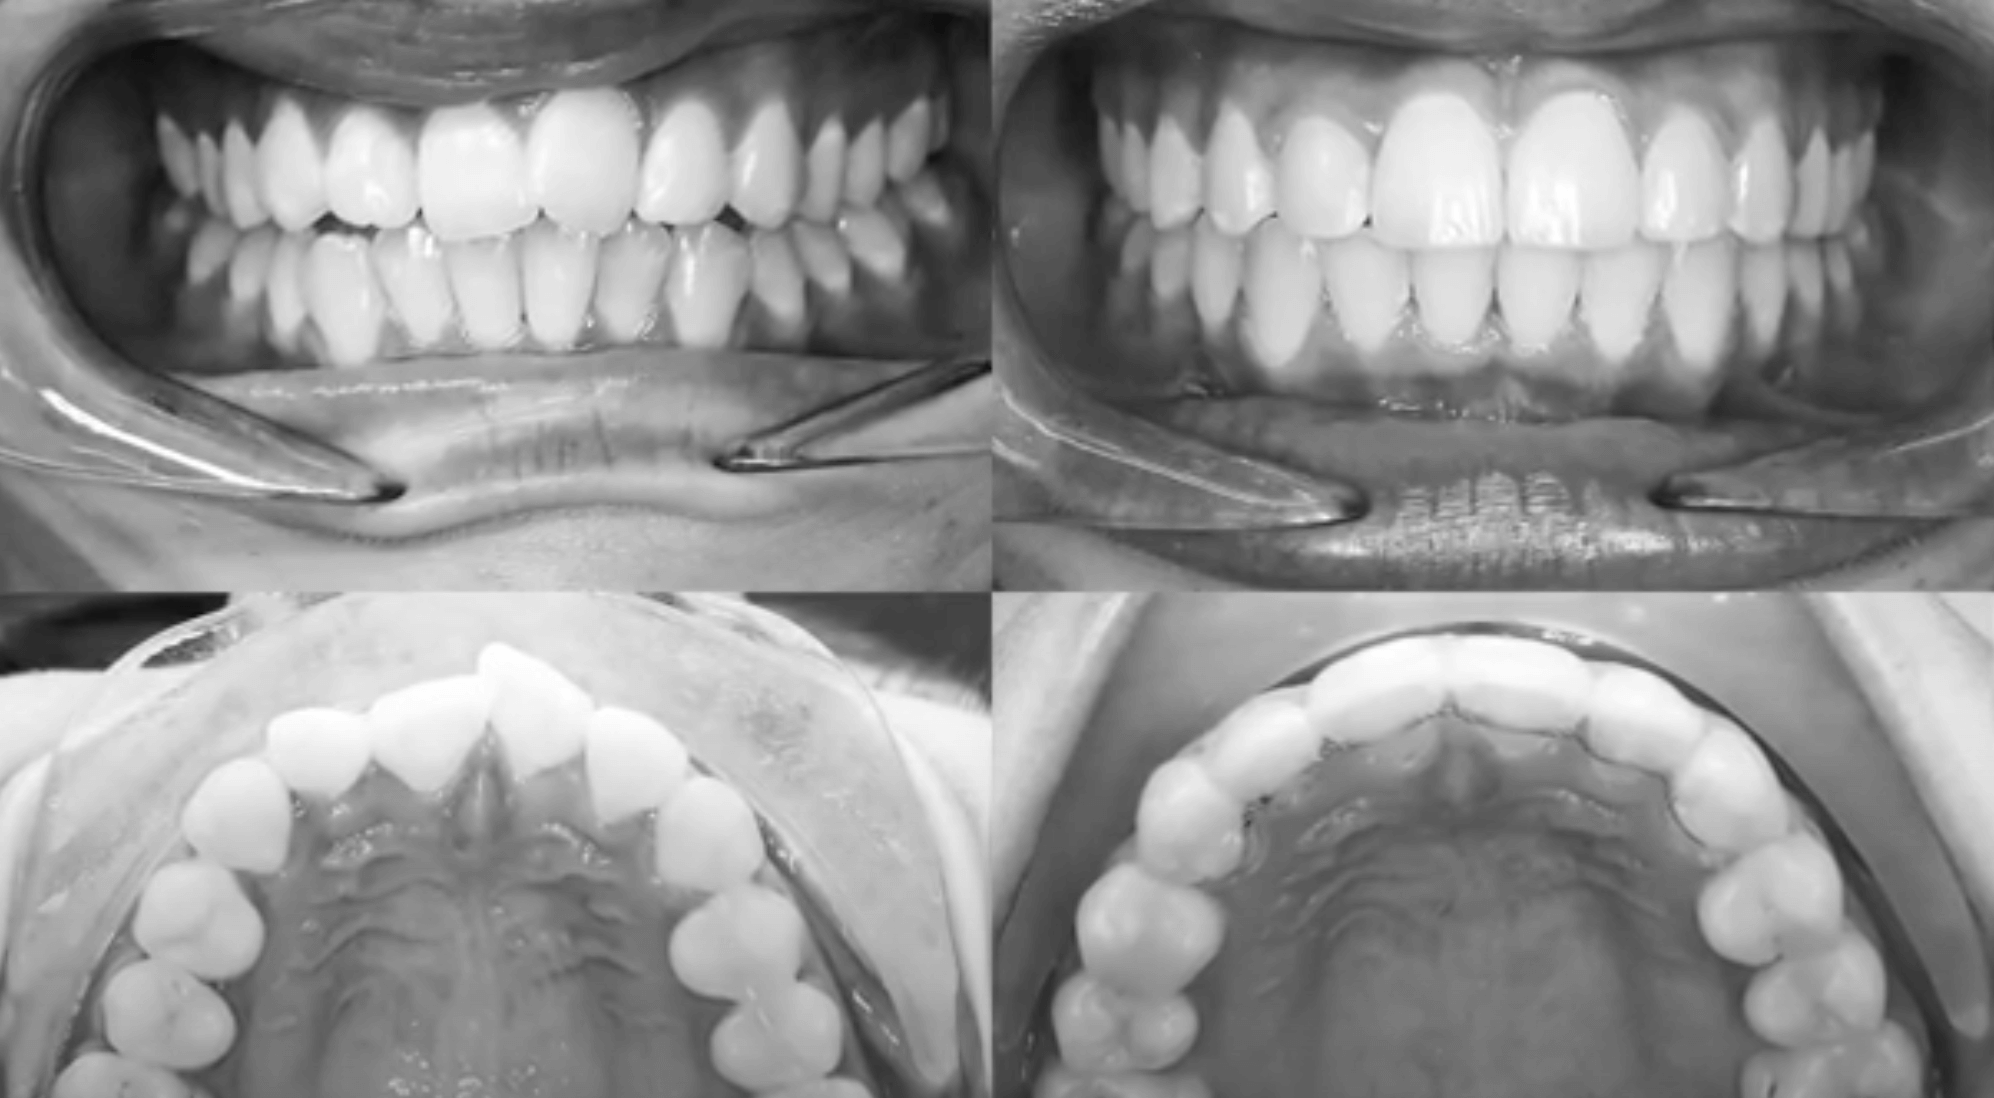 Black and white photos of crooked teeth before and after using aligners